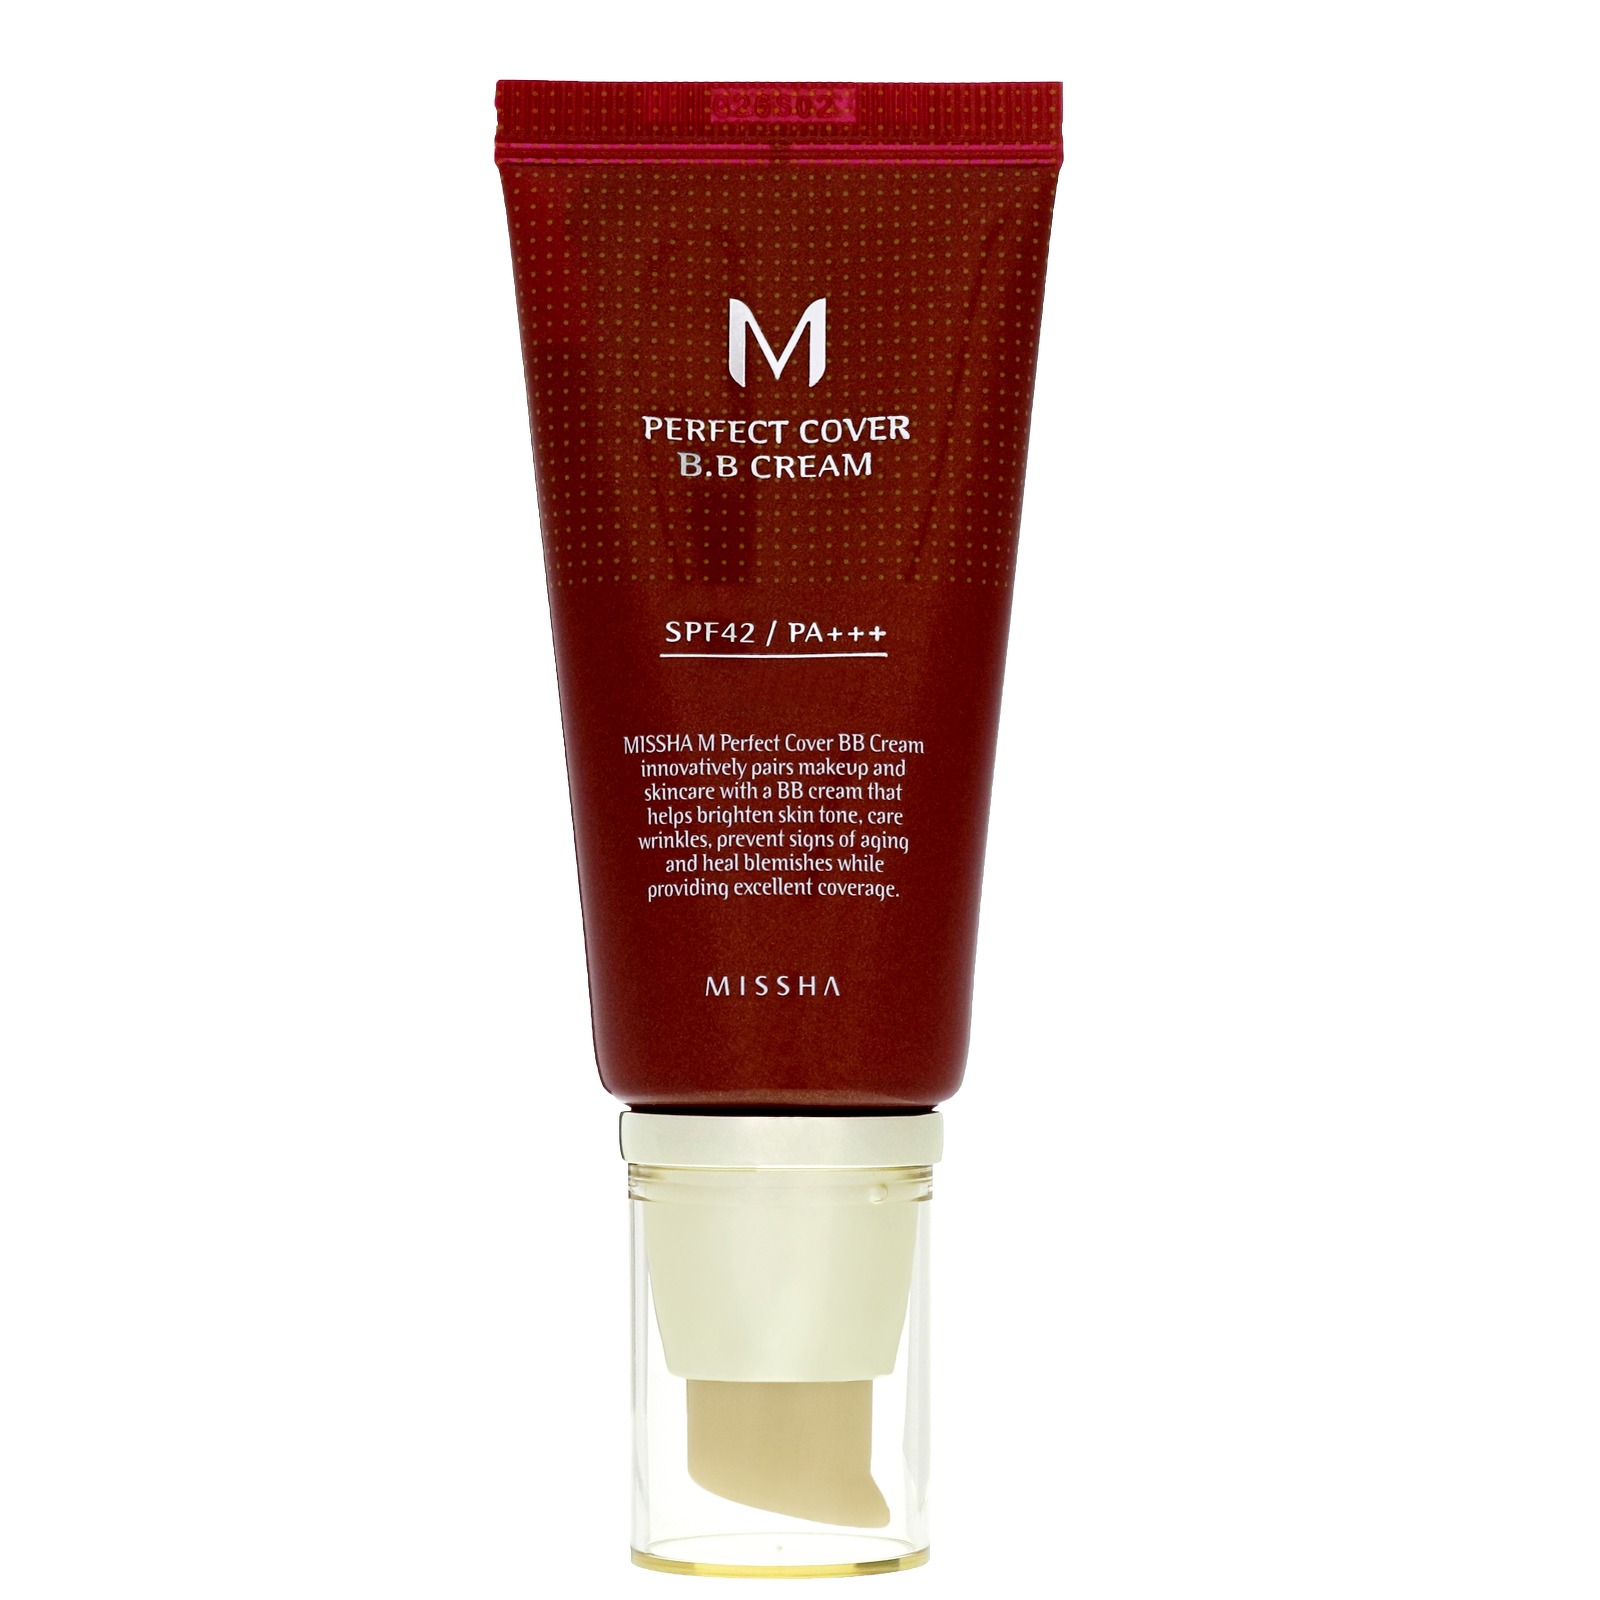 MISSHA M Perfect Cover BB Cream SPF42 50ml 23 Beige Naturale 50ml